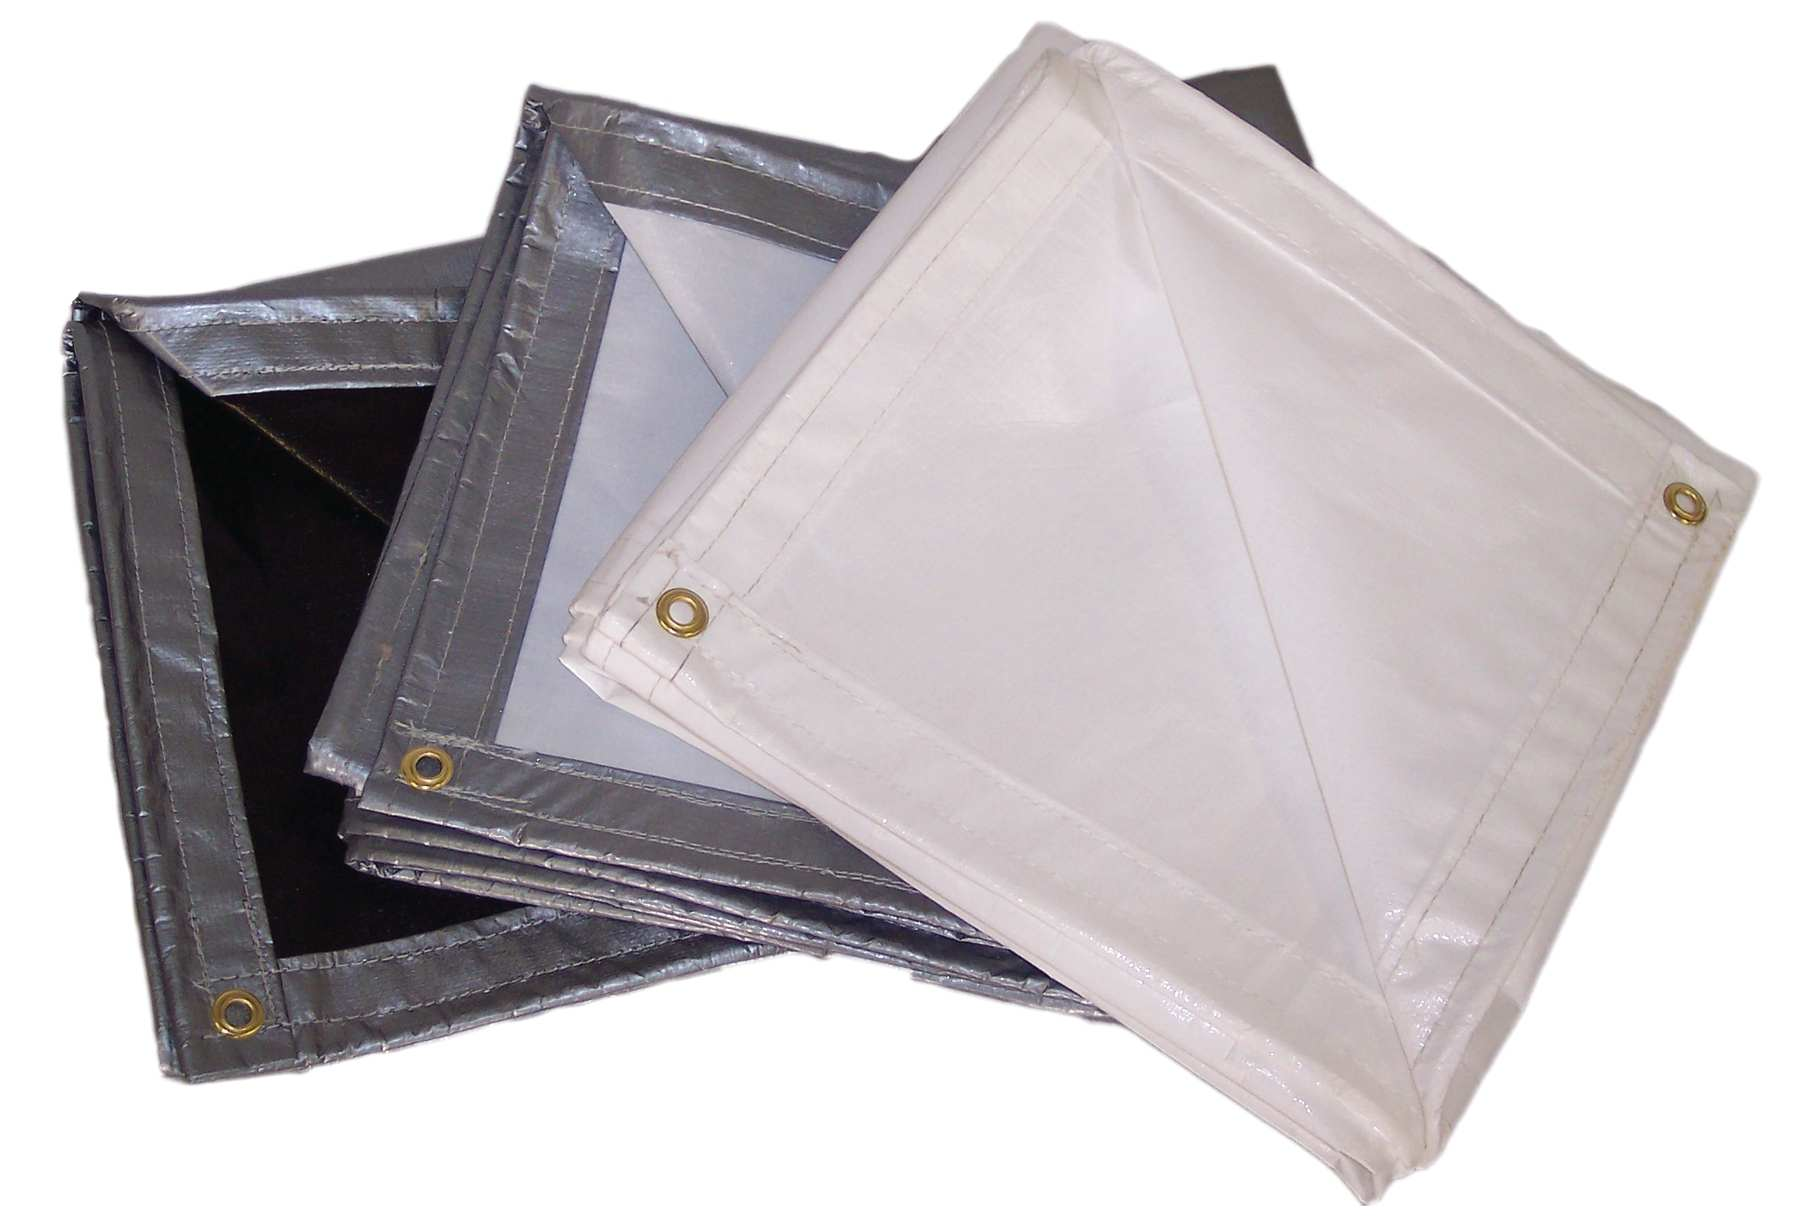 Heavy Duty Reinforced Polyethylene Tarps – 12 mil., 7 oz./sq. Yd.; Size (ft.) 16 x 20